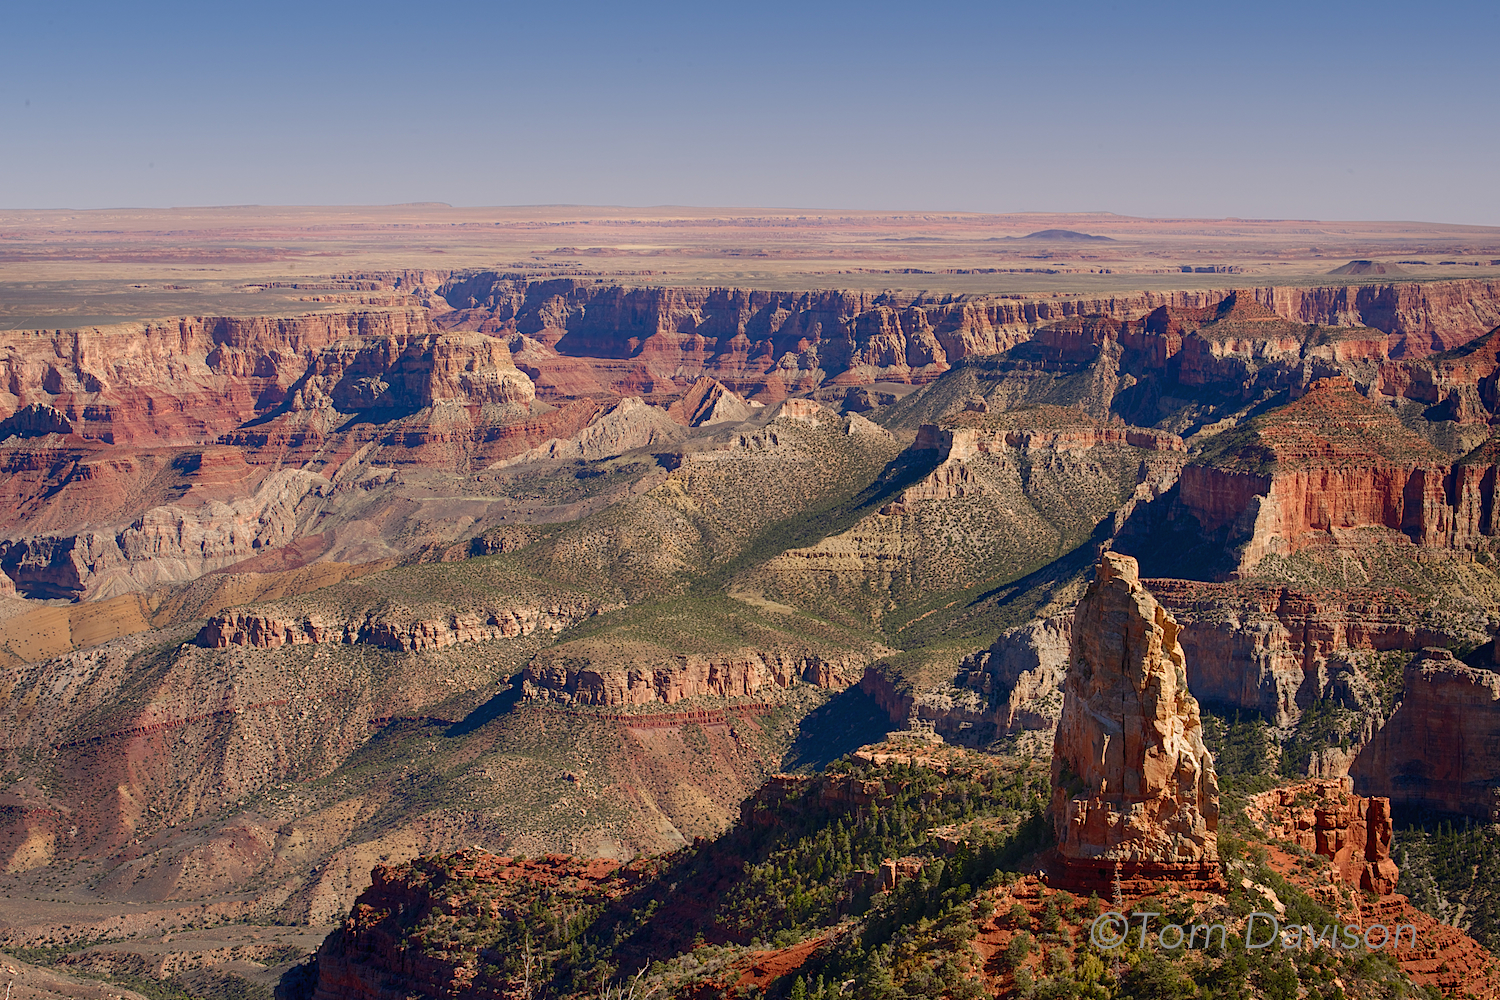 This image really shows the height difference between the North and South Rim.